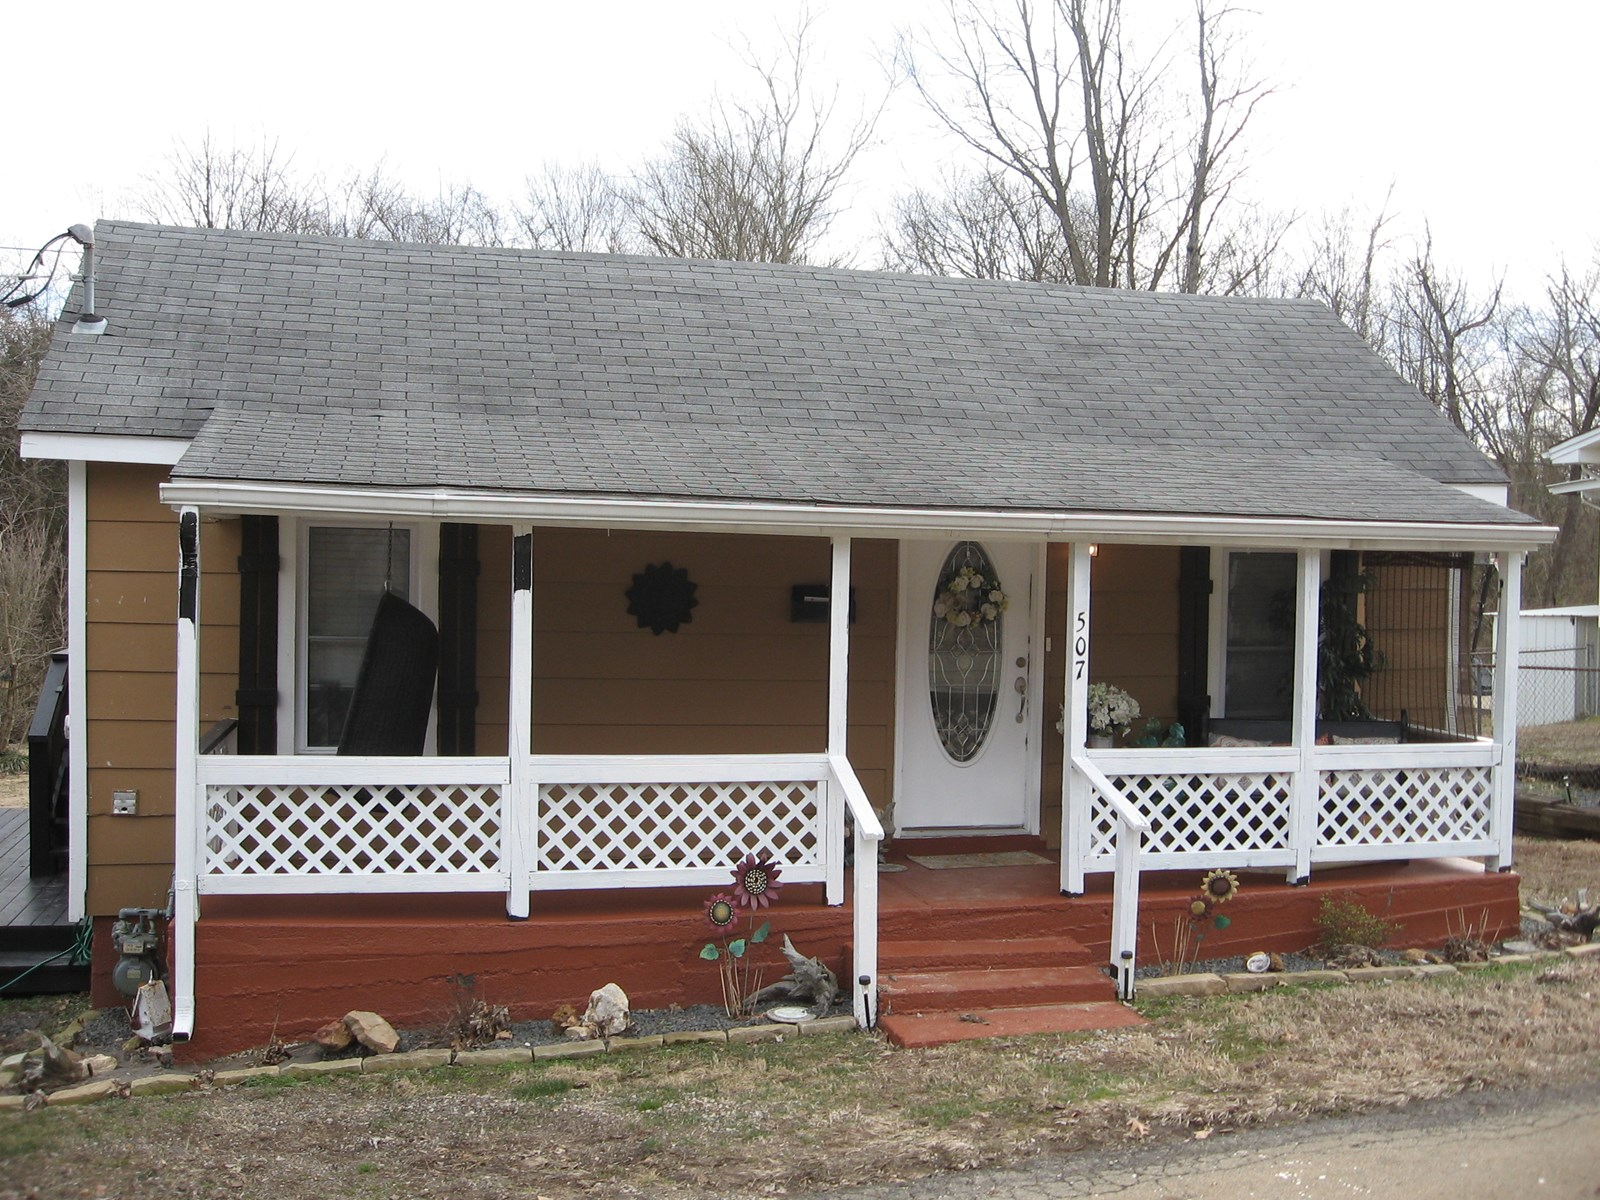 2-BR, 1-BA W/MANY UPDATES THROUGHOUT: